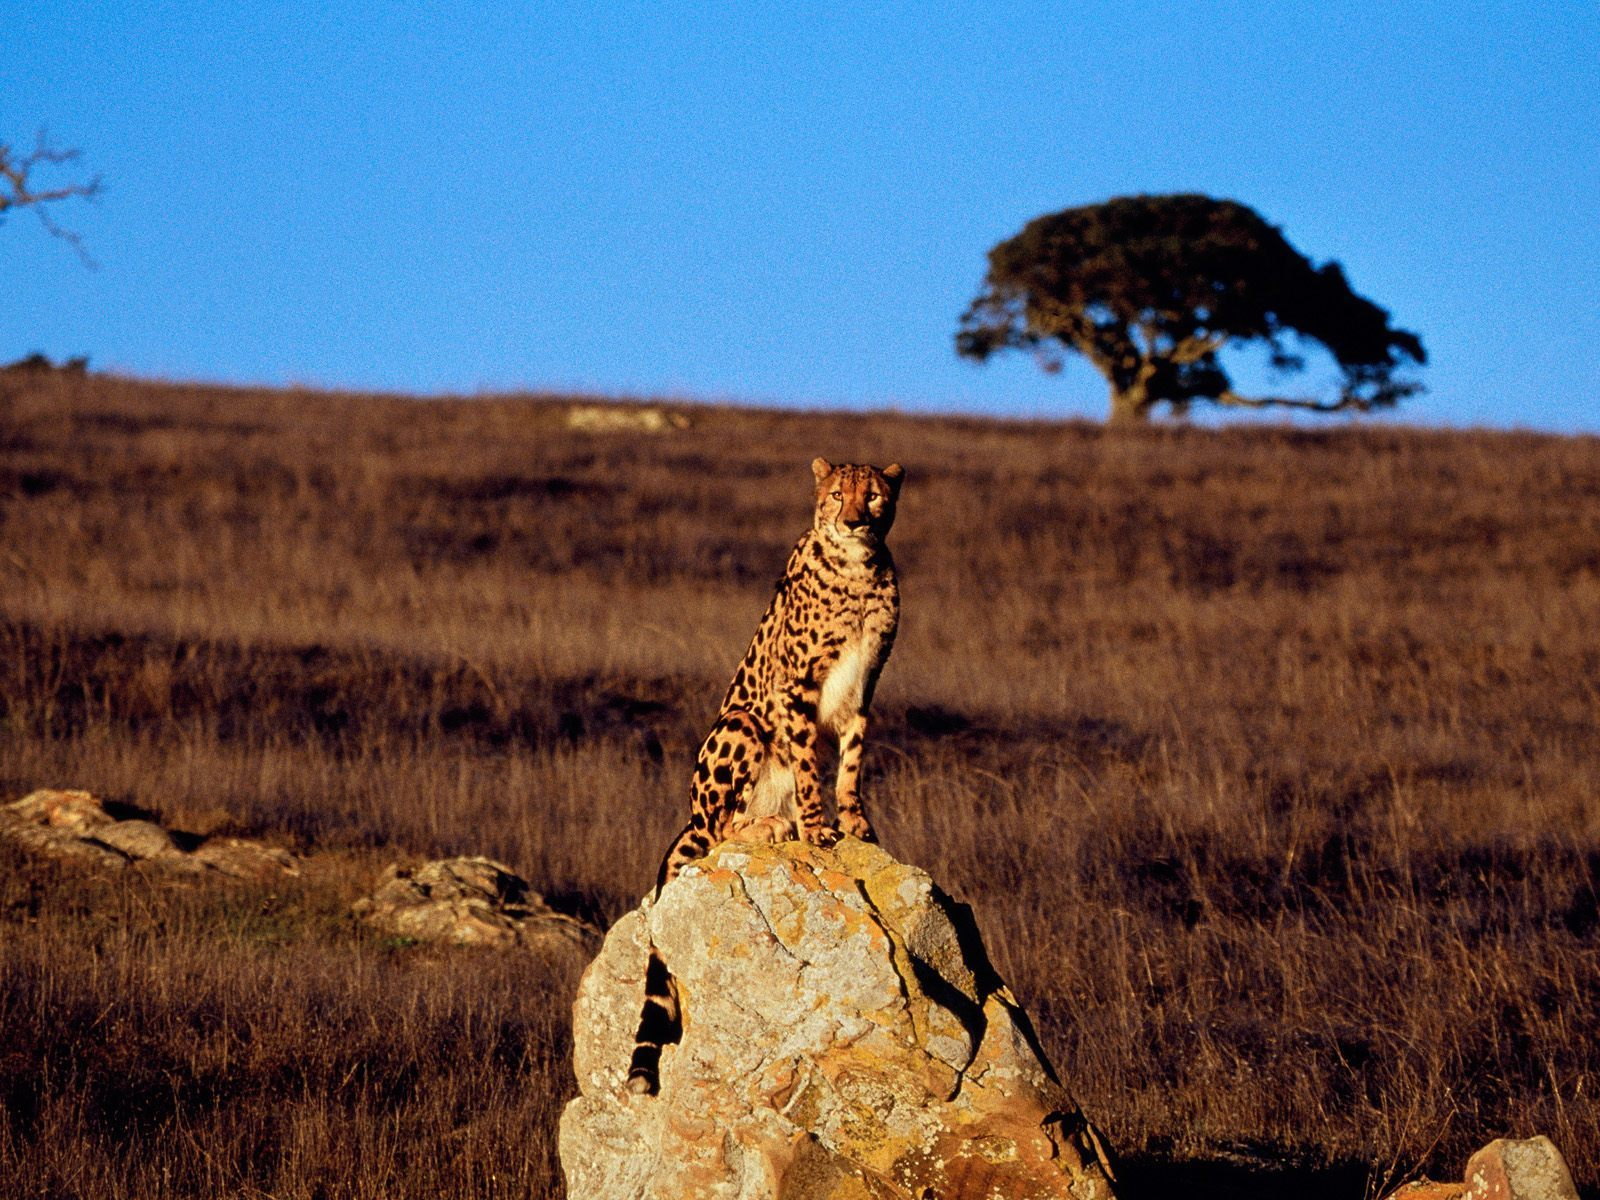 King Cheetah vs Cheetah King Cheetah King Cheetahs